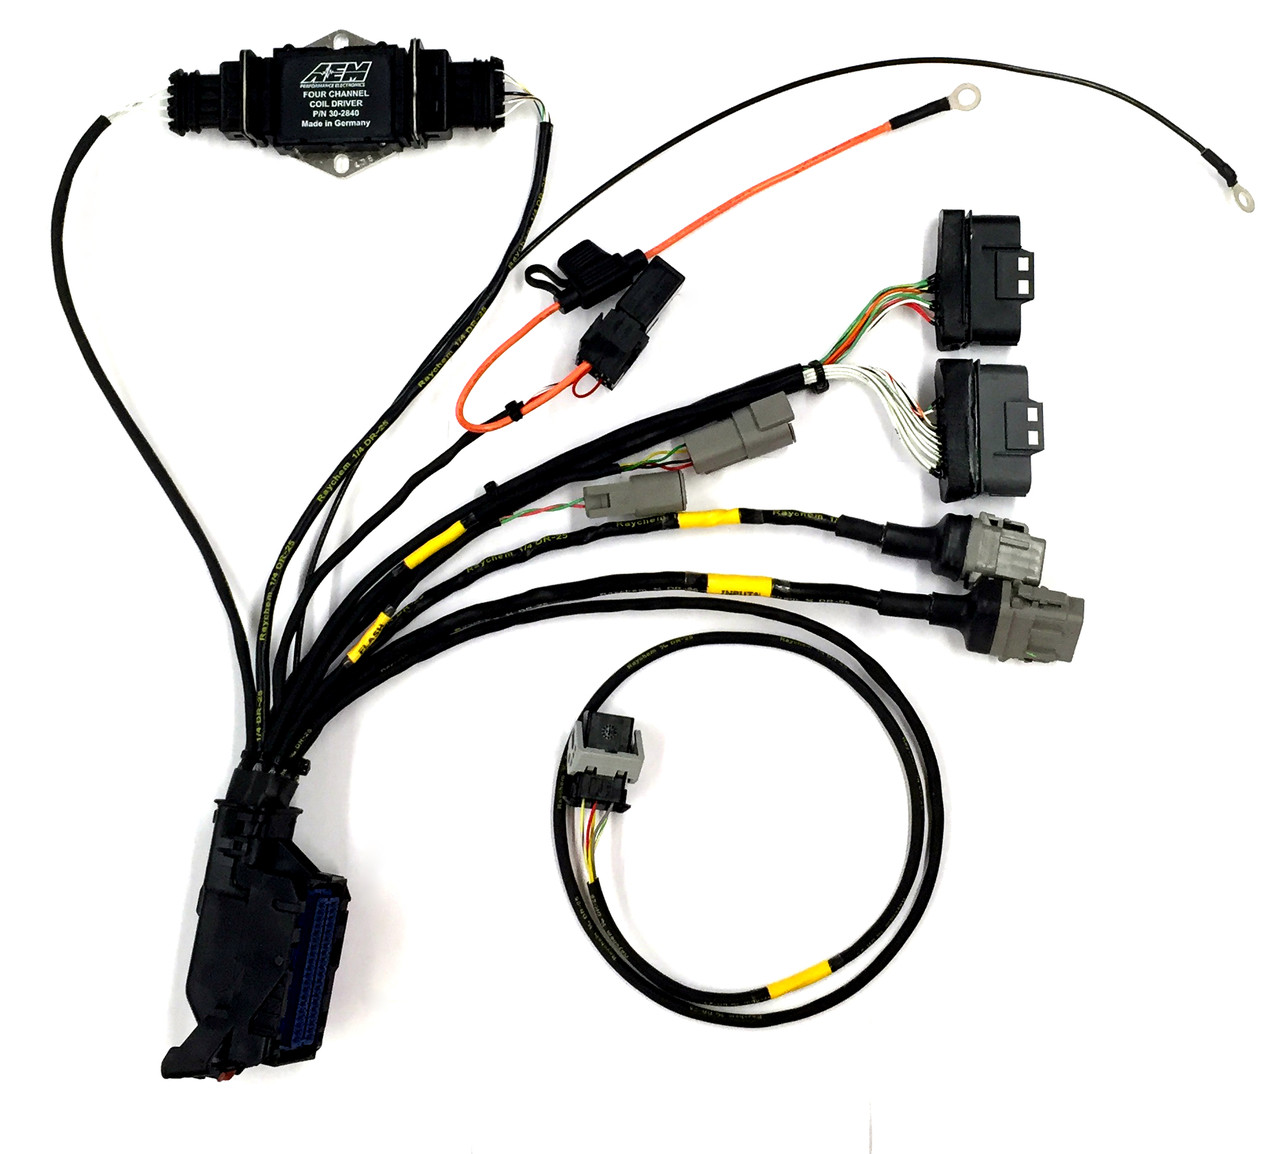 hight resolution of plug and play harness